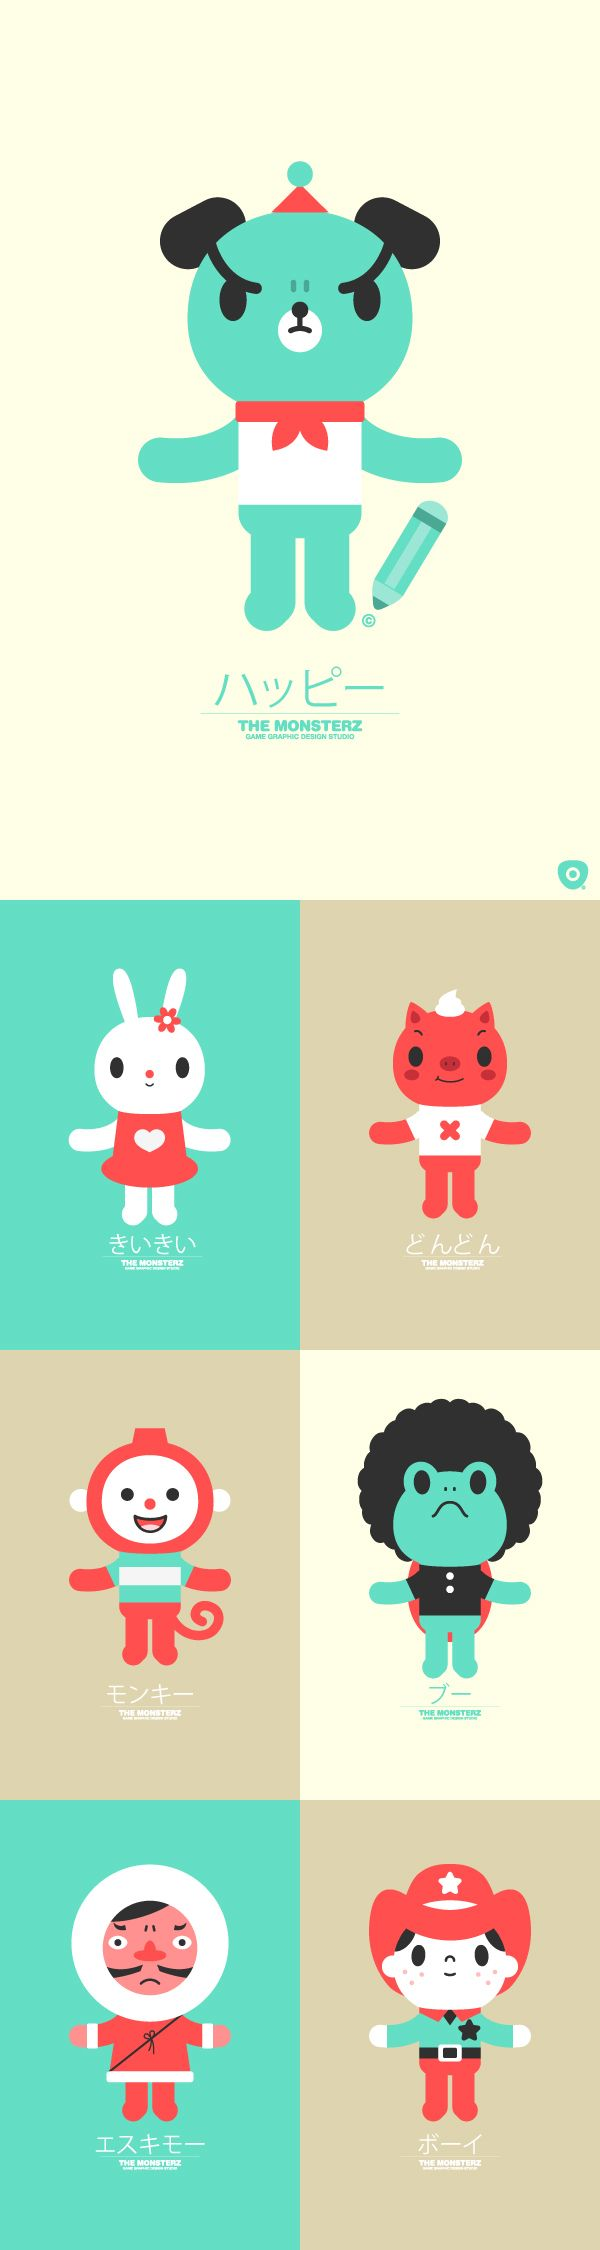 HAPPY by THE MONSTERZ, via Behance